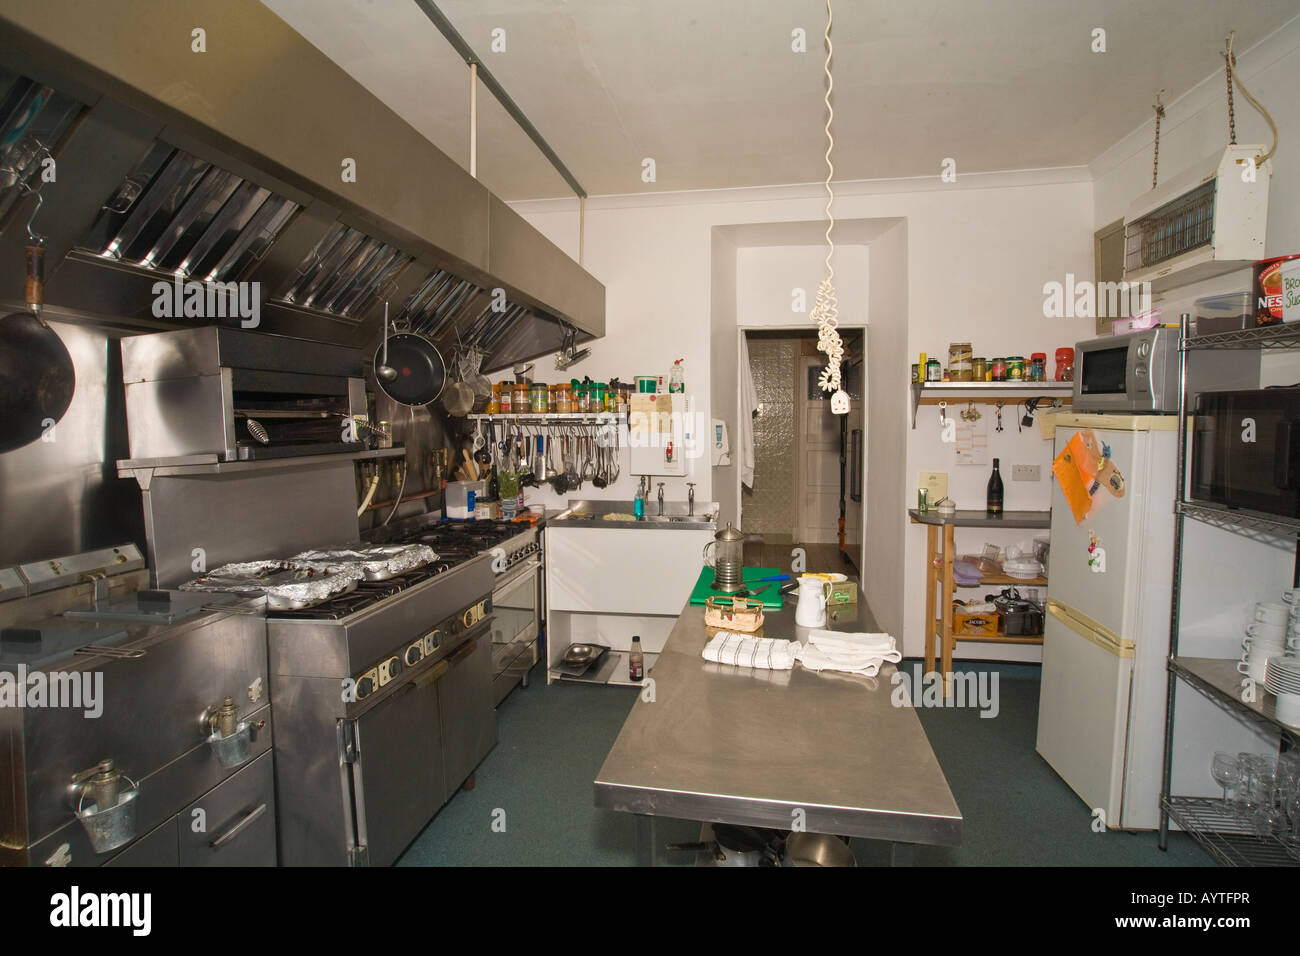 Hotel kitchen with cookers fridge and showing food preparation area - Stock Image